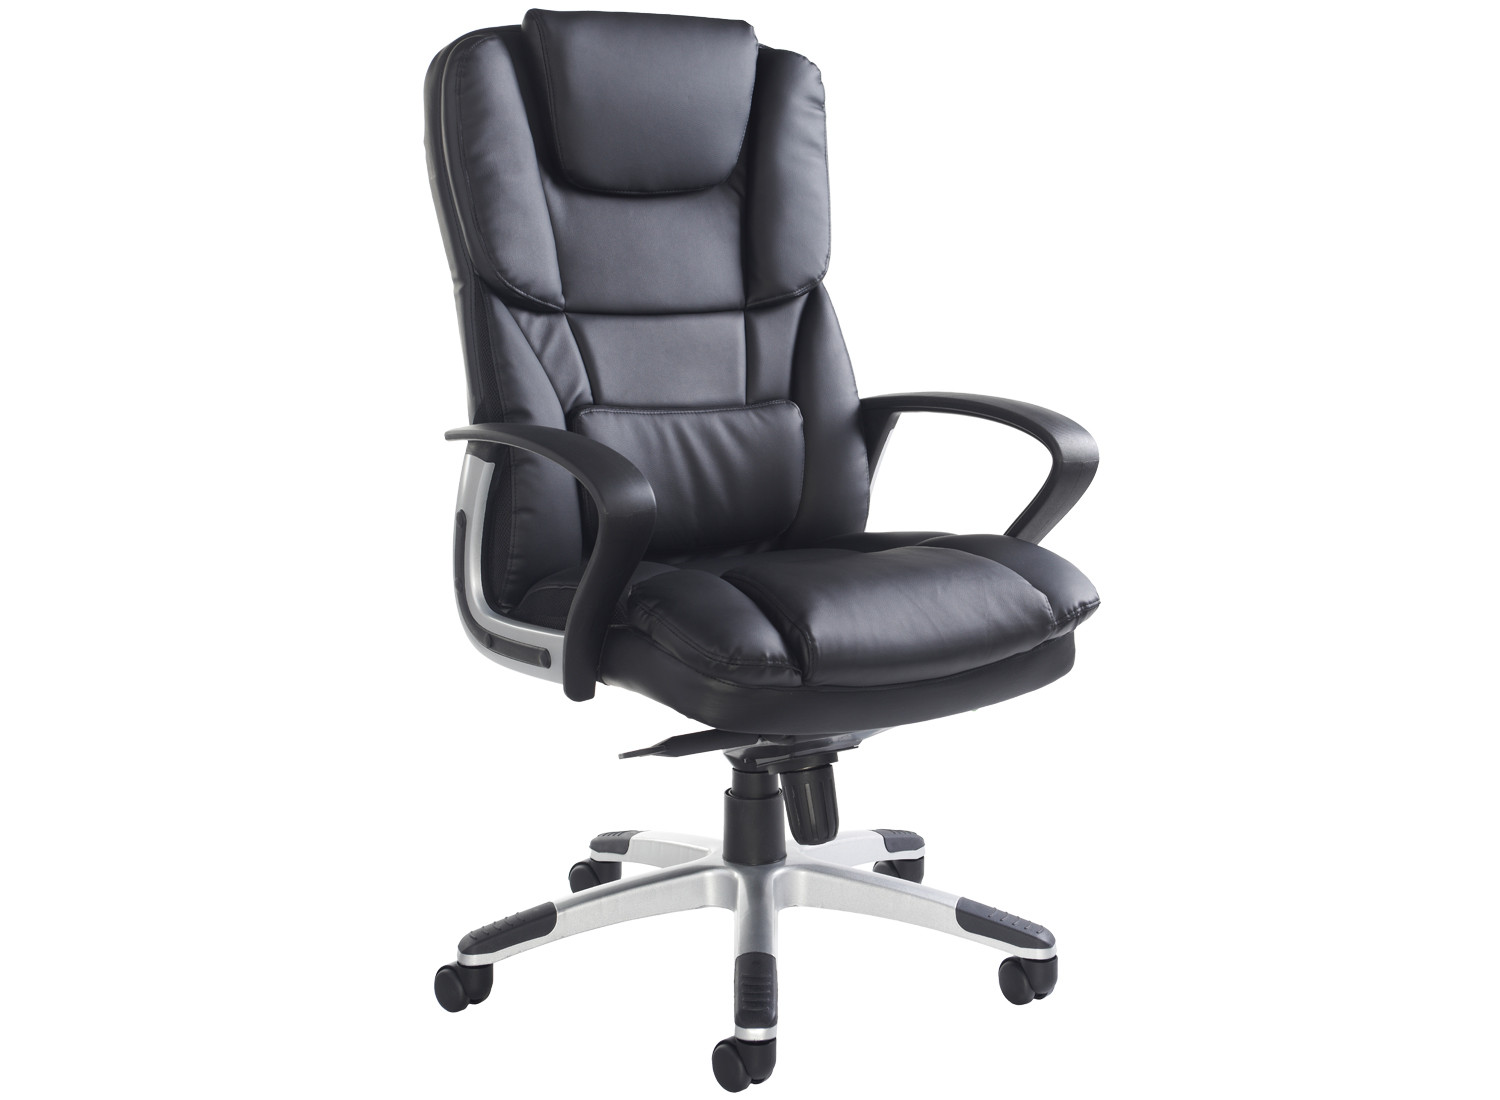 Grenero High Back Faux Leather Executive Chair